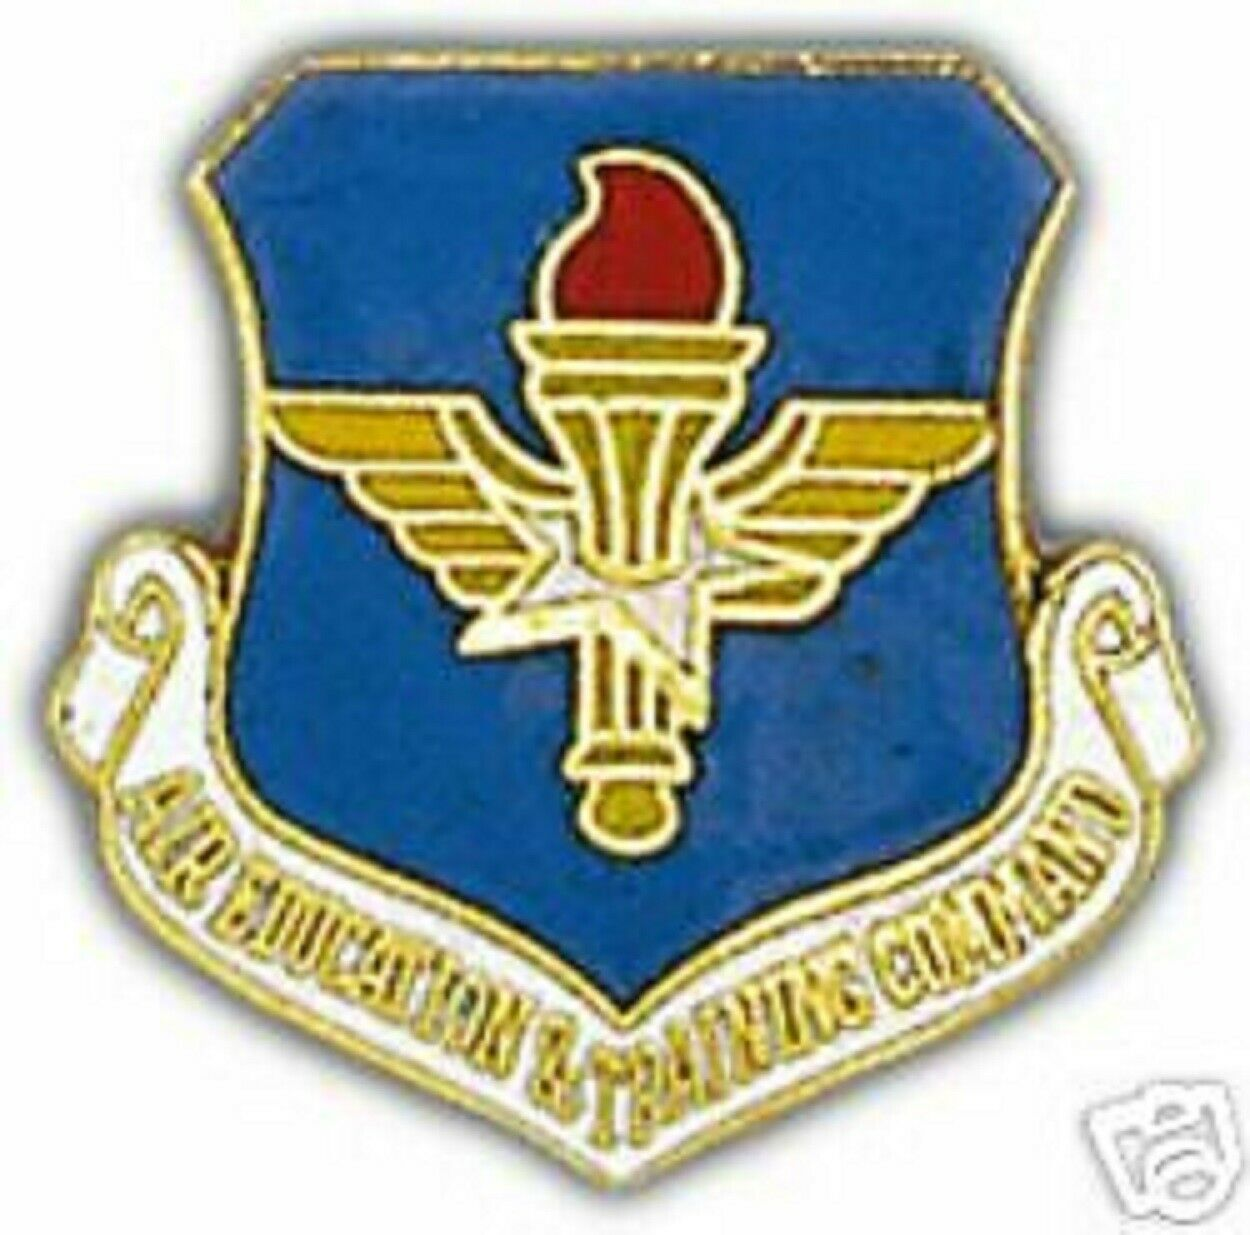 USAF AIR FORCE AIR EDUCATION & TRAINING COMMAND PIN - $15.33